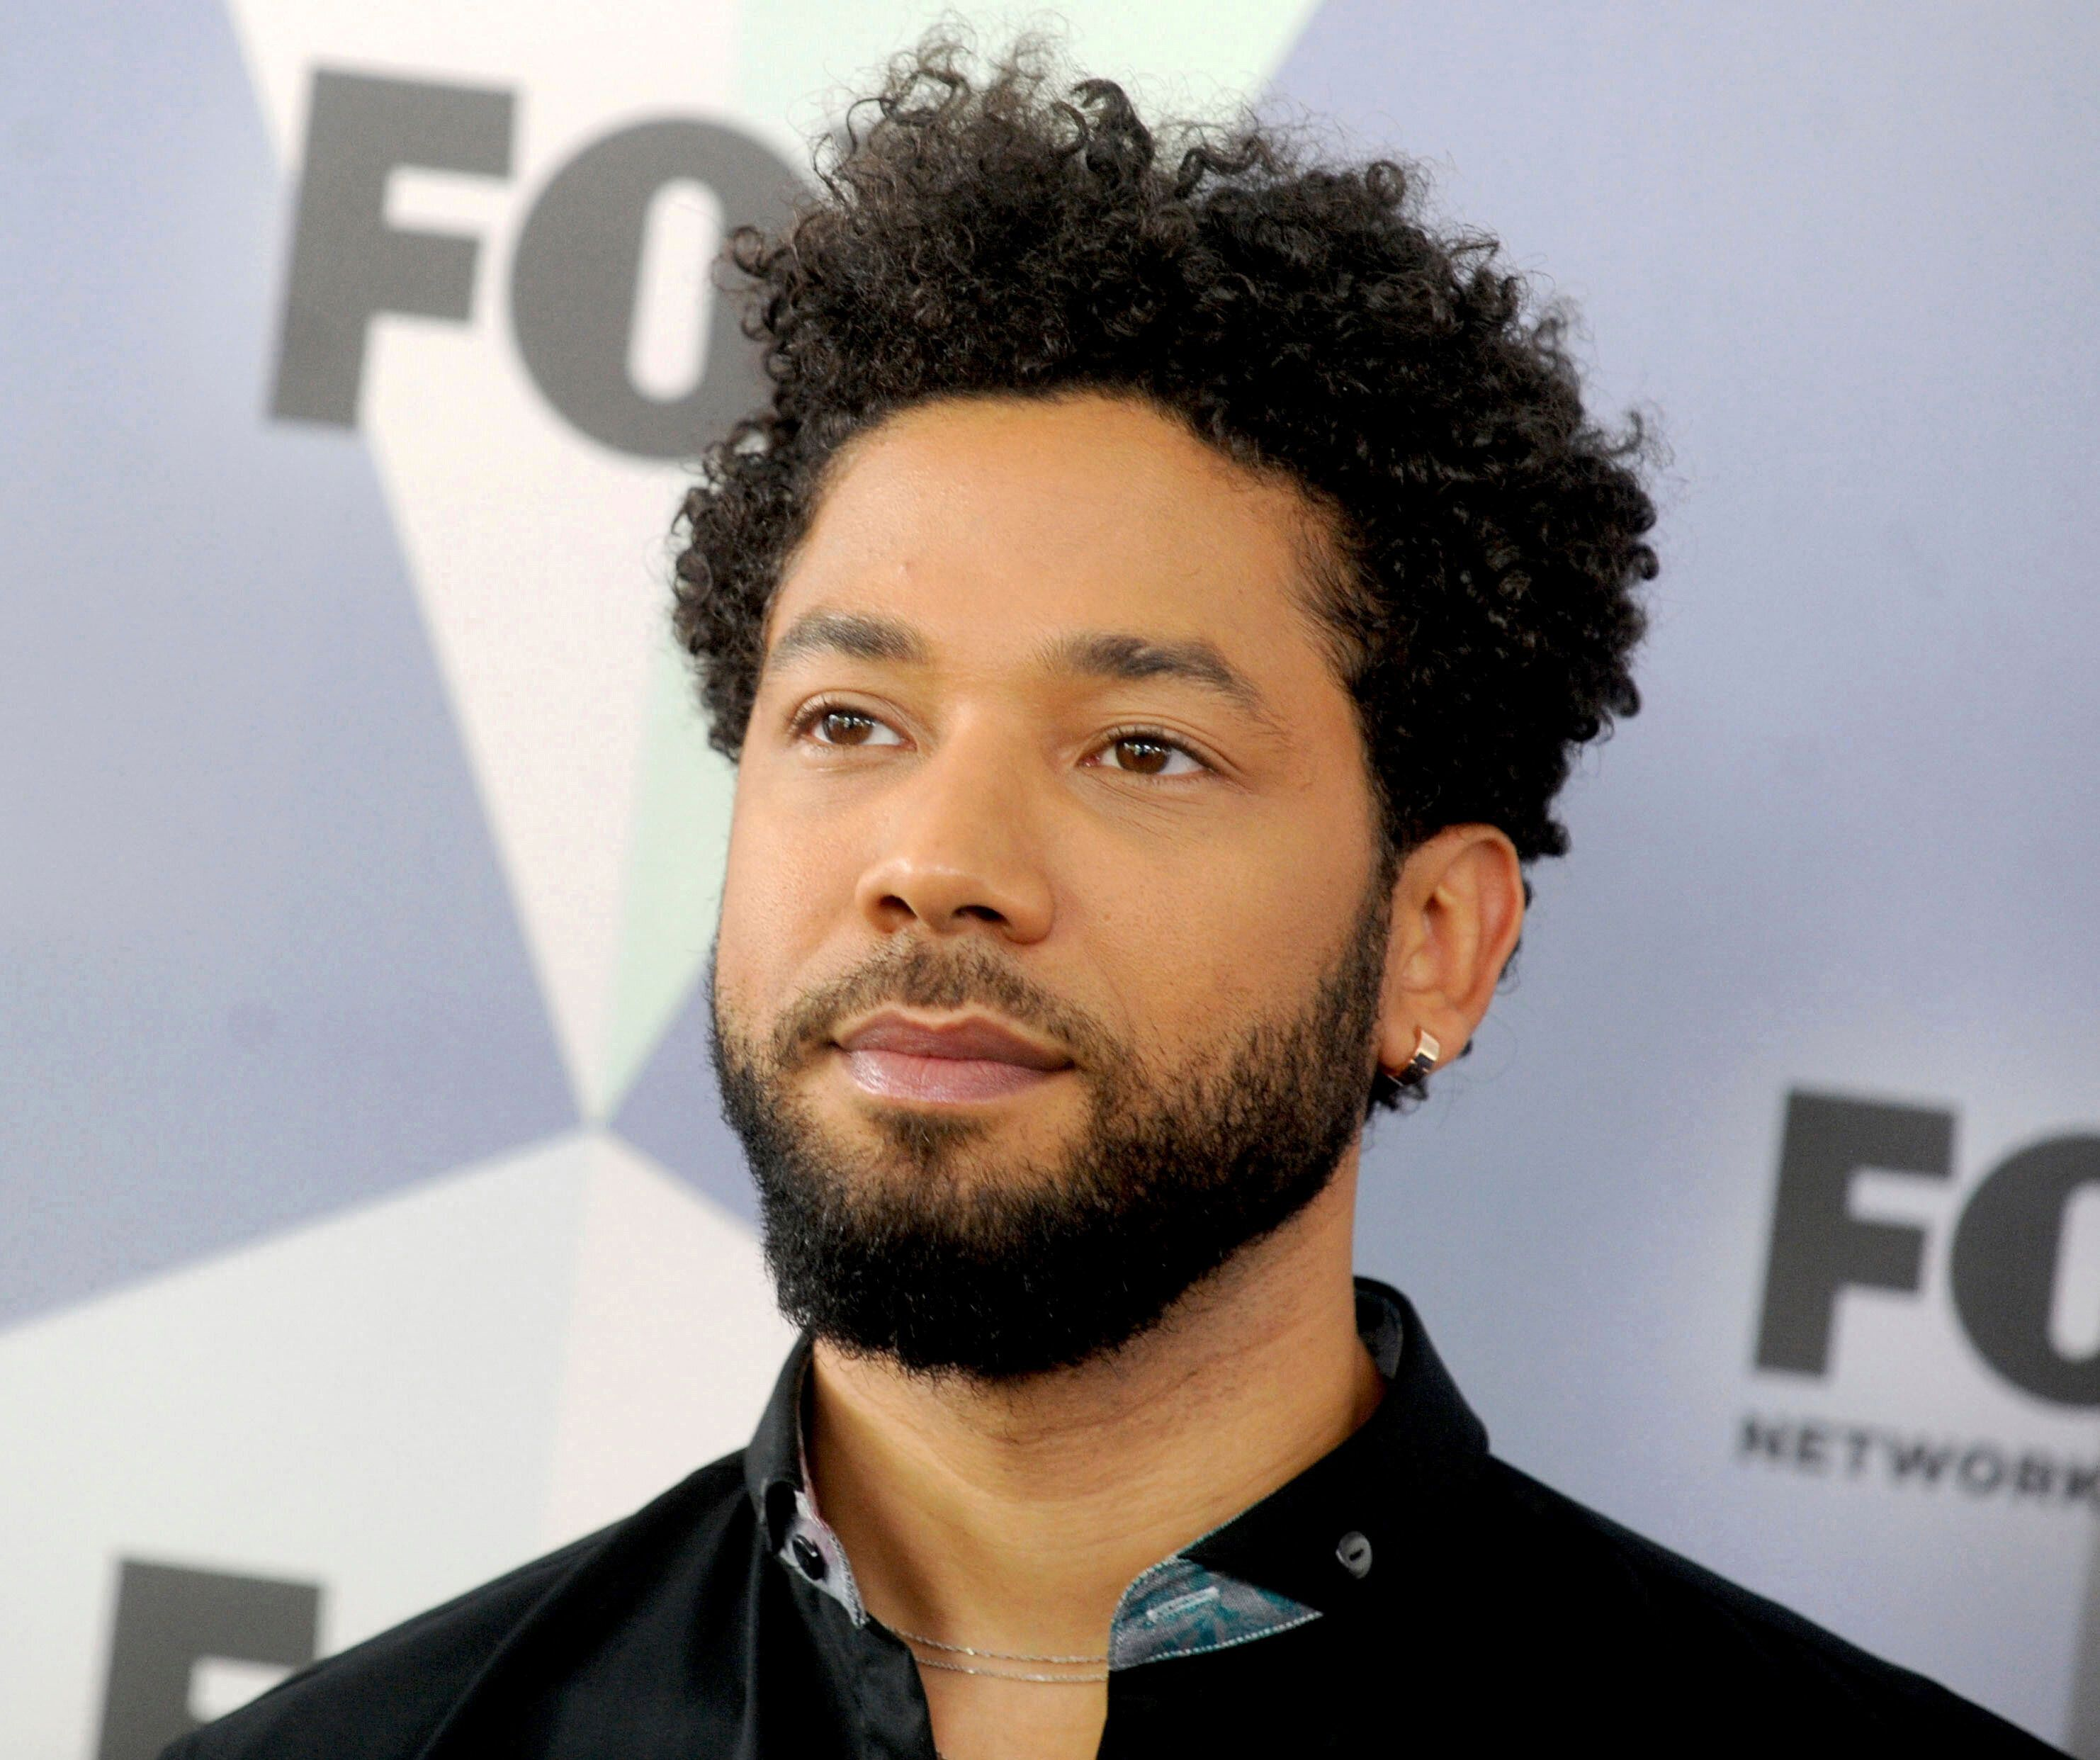 "March 26th 2019 - All charges have been dropped against Jussie Smollett. In a stunning move on Tuesday, March 26, 2019, prosecutors in Cook County, Chicago, Illinois have dropped all charges against actor Jussie Smollett who had been accused of staging a hate crime attack against himself in downtown Chicago on January 29th. - March 14th 2019 - Jussie Smollett pleads not guilty in Cook County court to 16 counts of disorderly conduct, maintaining his innocence amid allegations as detailed below that he faked an attack against himself. - March 8th 2019 - Jussie Smollett has been indicted on 16 felony counts of disorderly conduct by a Cook County (Illinois) grand jury in connection with the January 29th incident in which he claimed he was the victim of an attack. Following below, these charges allege that Smollett orchestrated the attack and filed false reports of a crime. - February 21st 2019 - Jussie Smollett is under arrest in custody of Chicago police. He has been charged with Disorderly Conduct / Filing A False Police Report in connection with the January 29th incident in which he claimed he was the victim of an attack. Following below, these charges allege that Smollett orchestrated the attack. - February 18th 2019 - The investigation of the alleged attack on actor Jussie Smollett continues with new evidence suggesting that Smollett may have orchestrated the attack. Smollett continues to deny any involvement in said orchestration according to a statement from his attorneys. Update to the following - January 29th 2019 - Actor Jussie Smollett was the victim of an attack in Chicago, Illinois which is being investigated as a possible hate crime. According to police reports, he was assaulted after leaving a fast food restaurant by two men in ski masks who made racial and homophobic slurs and then poured an unknown liquid on Smollett and put a noose around his neck. Smollett identifies himself as a gay man and his mother is African-American. Further reports claim Smollett told police that his attackers touted ""MAGA"" (Make America Great Again) during the assault. Smollett said that he fought off the attackers and then admitted himself to Northwestern Memorial Hospital from which he was released ""in good condition"" later that morning. - File Photo by: zz/Dennis Van Tine/STAR MAX/IPx 2018 5/14/18 Jussie Smollett at The 2018 Fox Network Upfront in New York City. (NYC)"